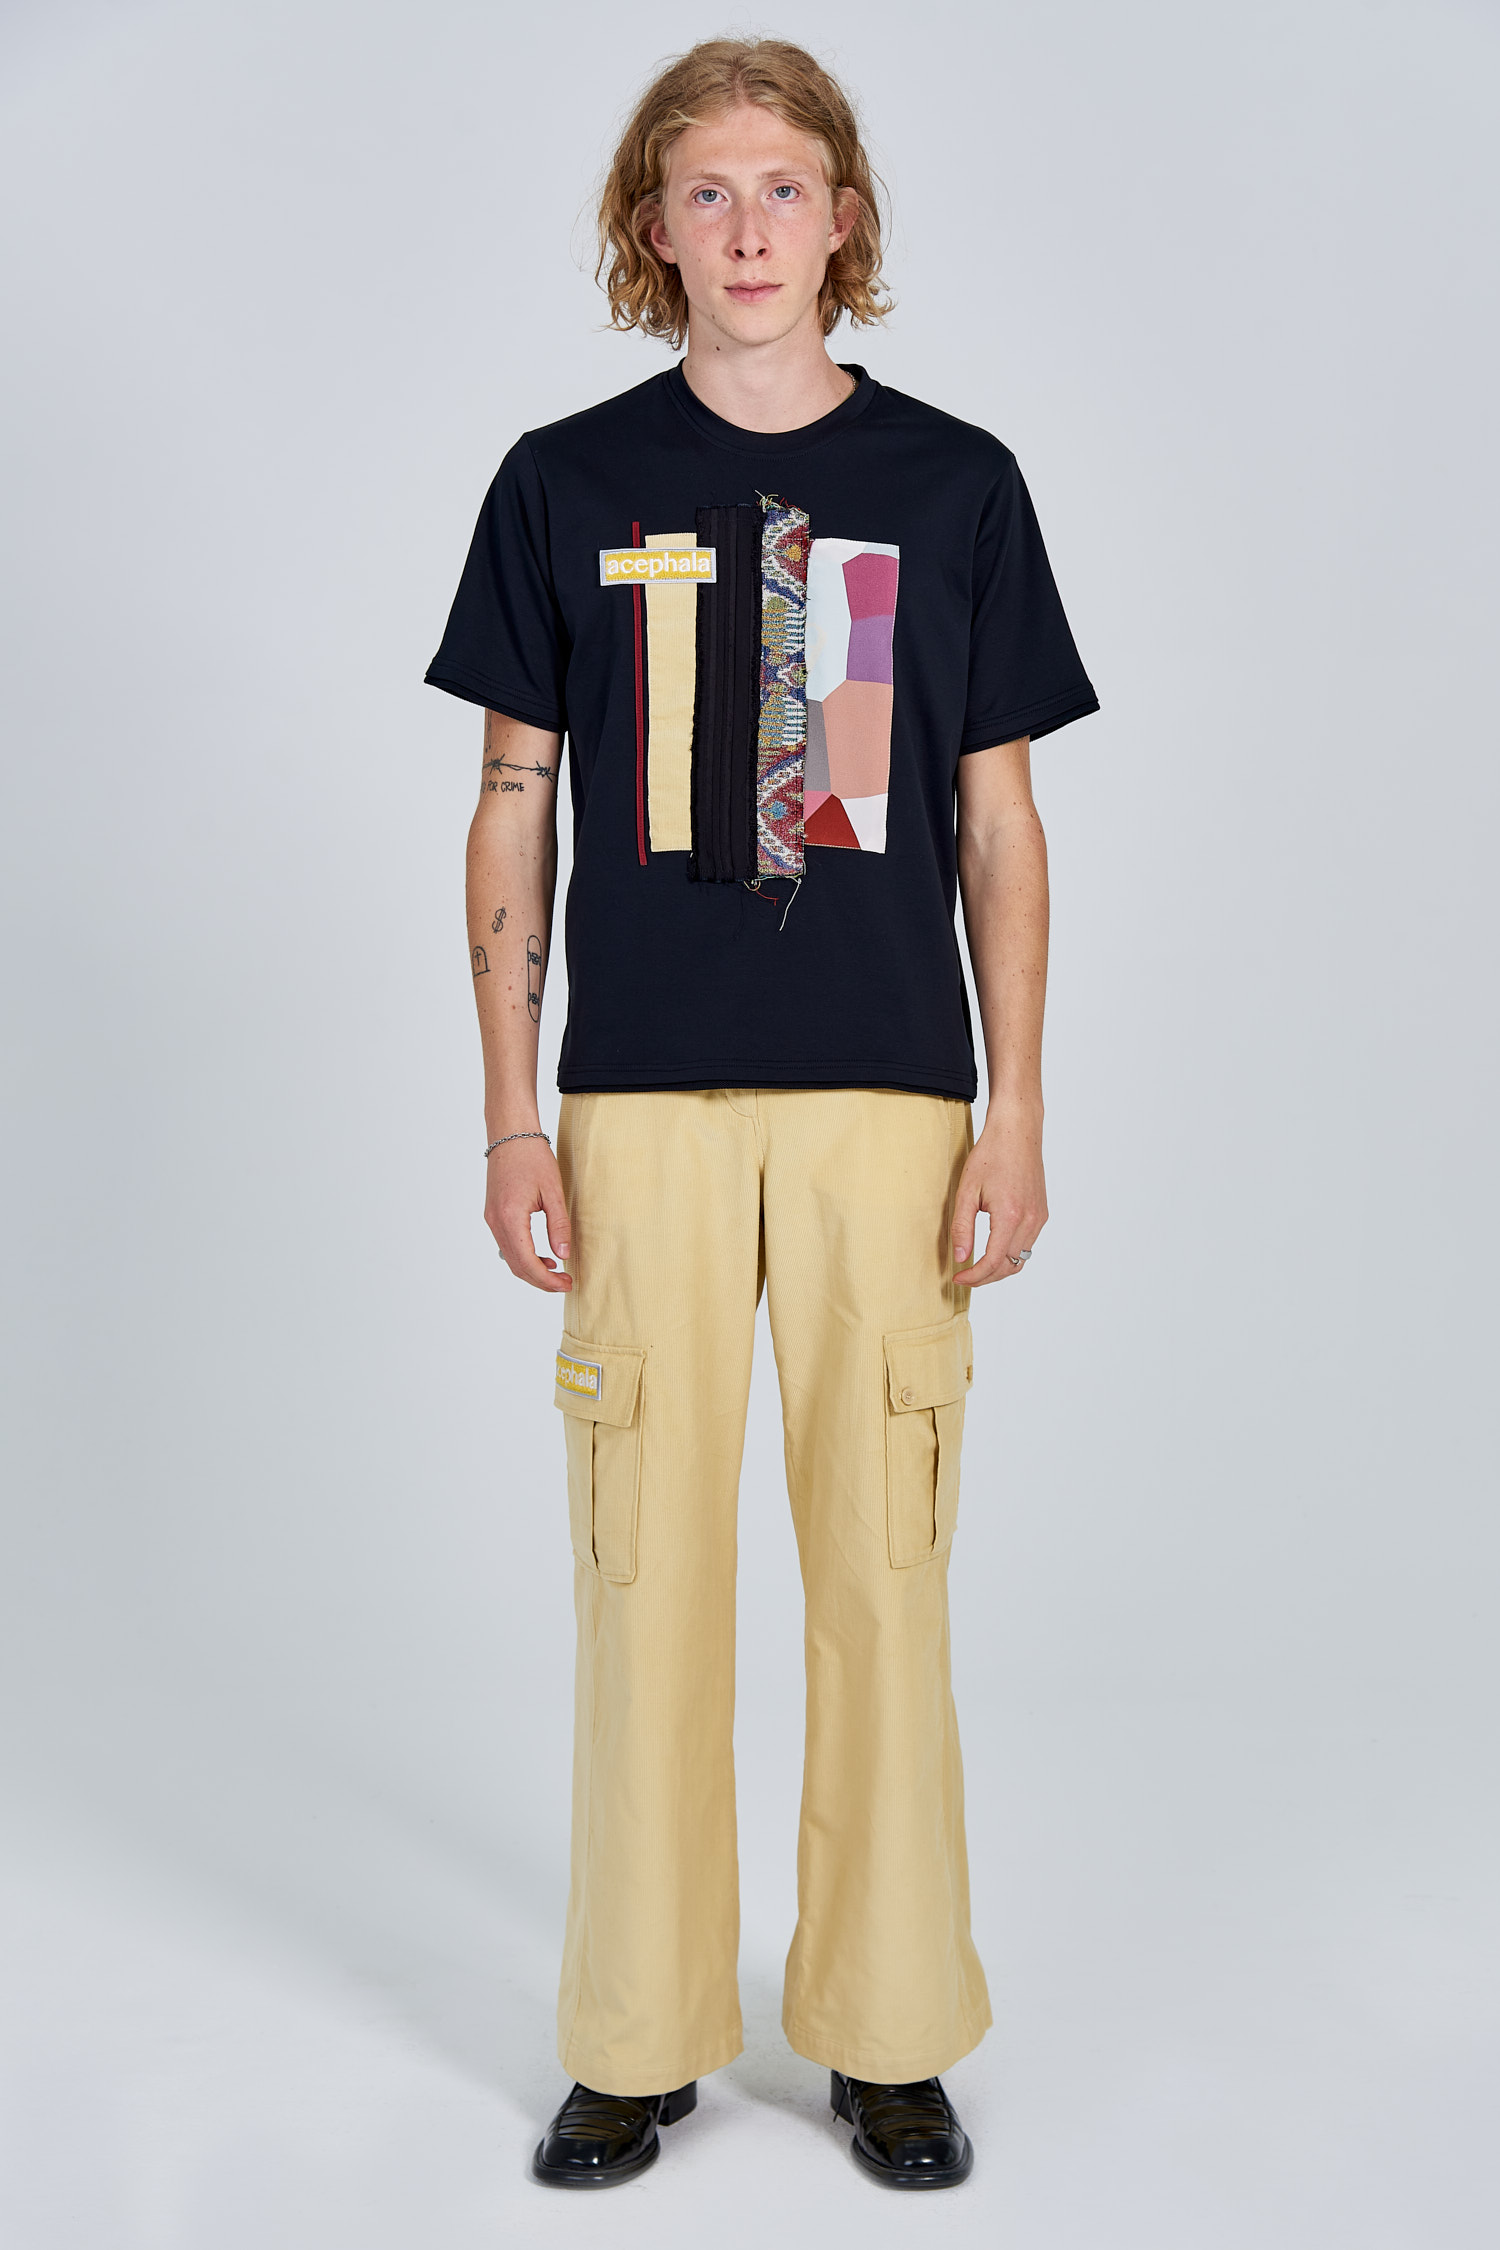 Acephala Fw 2020 21 Patchwork T Shirt Yellow Corduroy Trousers